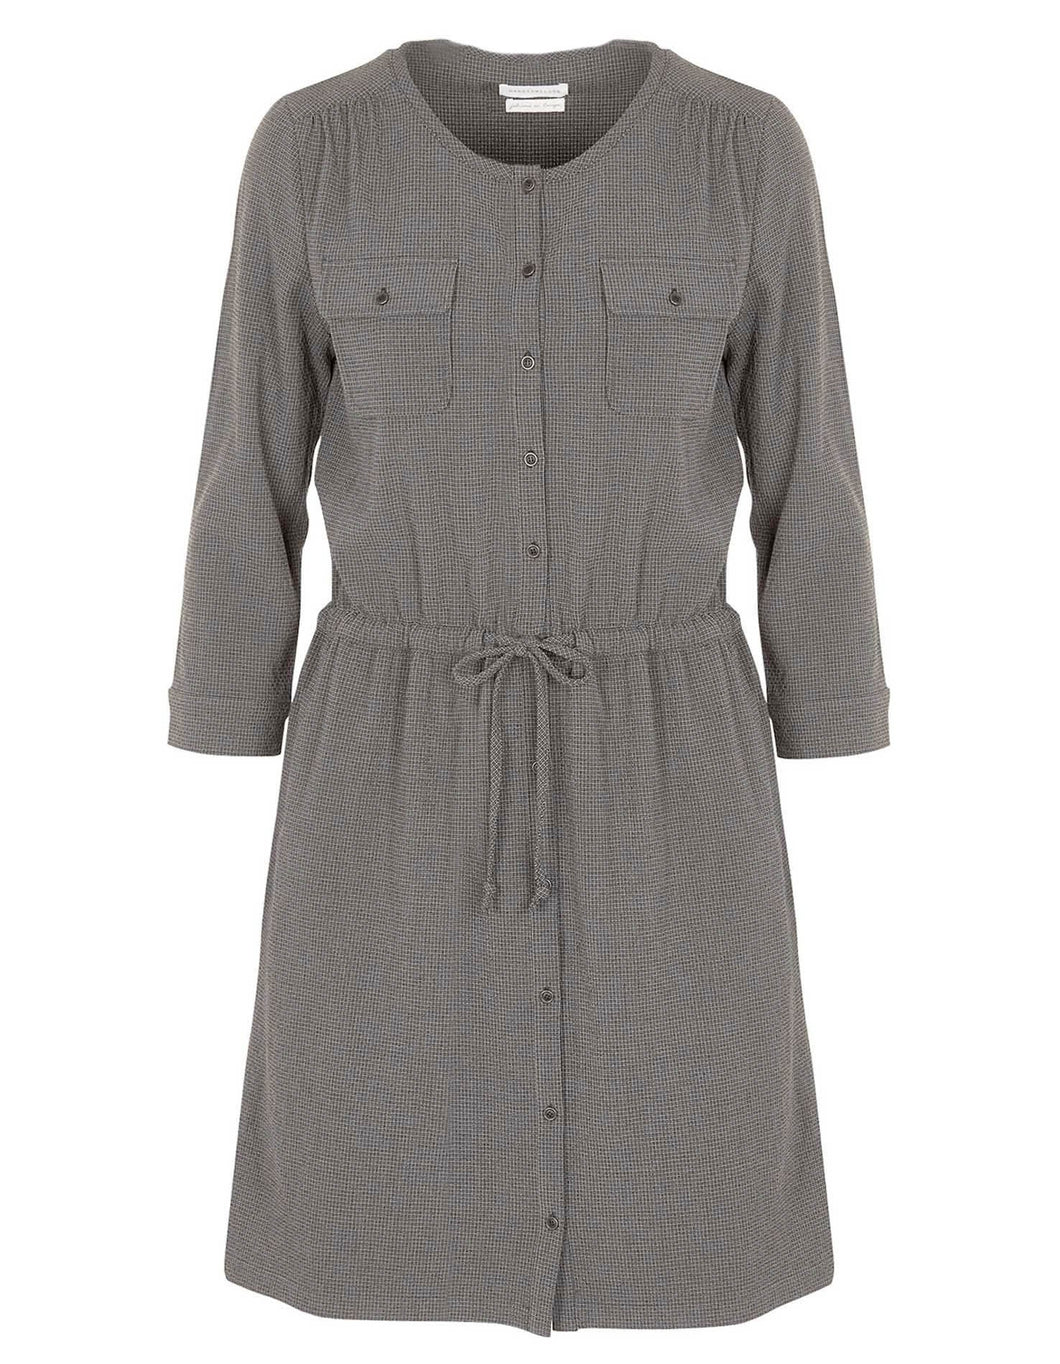 ELEANE DRESS